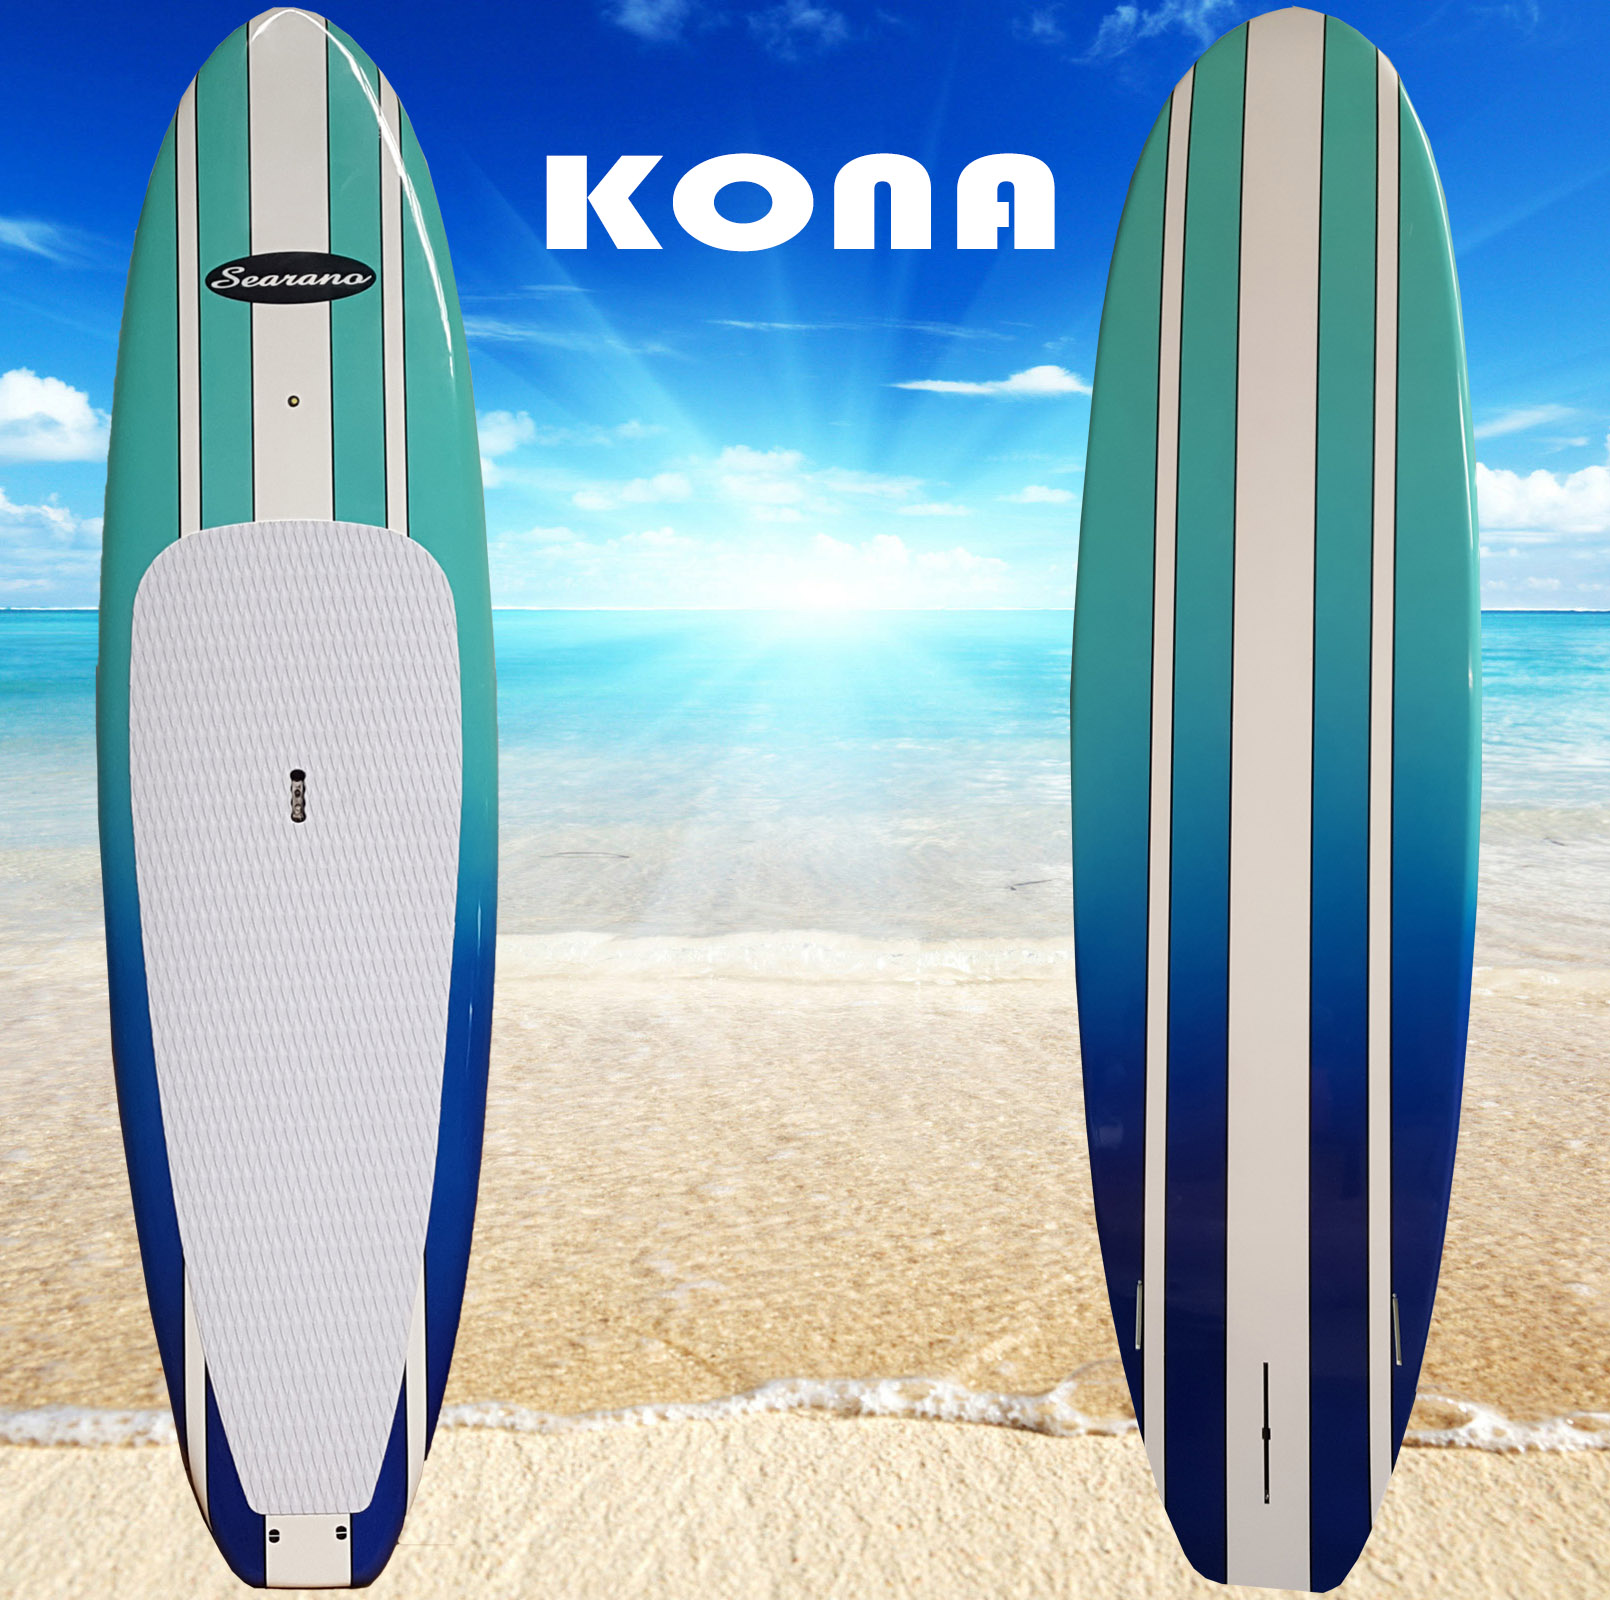 New Model Kona Stand Up Paddle Board Now With White Deck